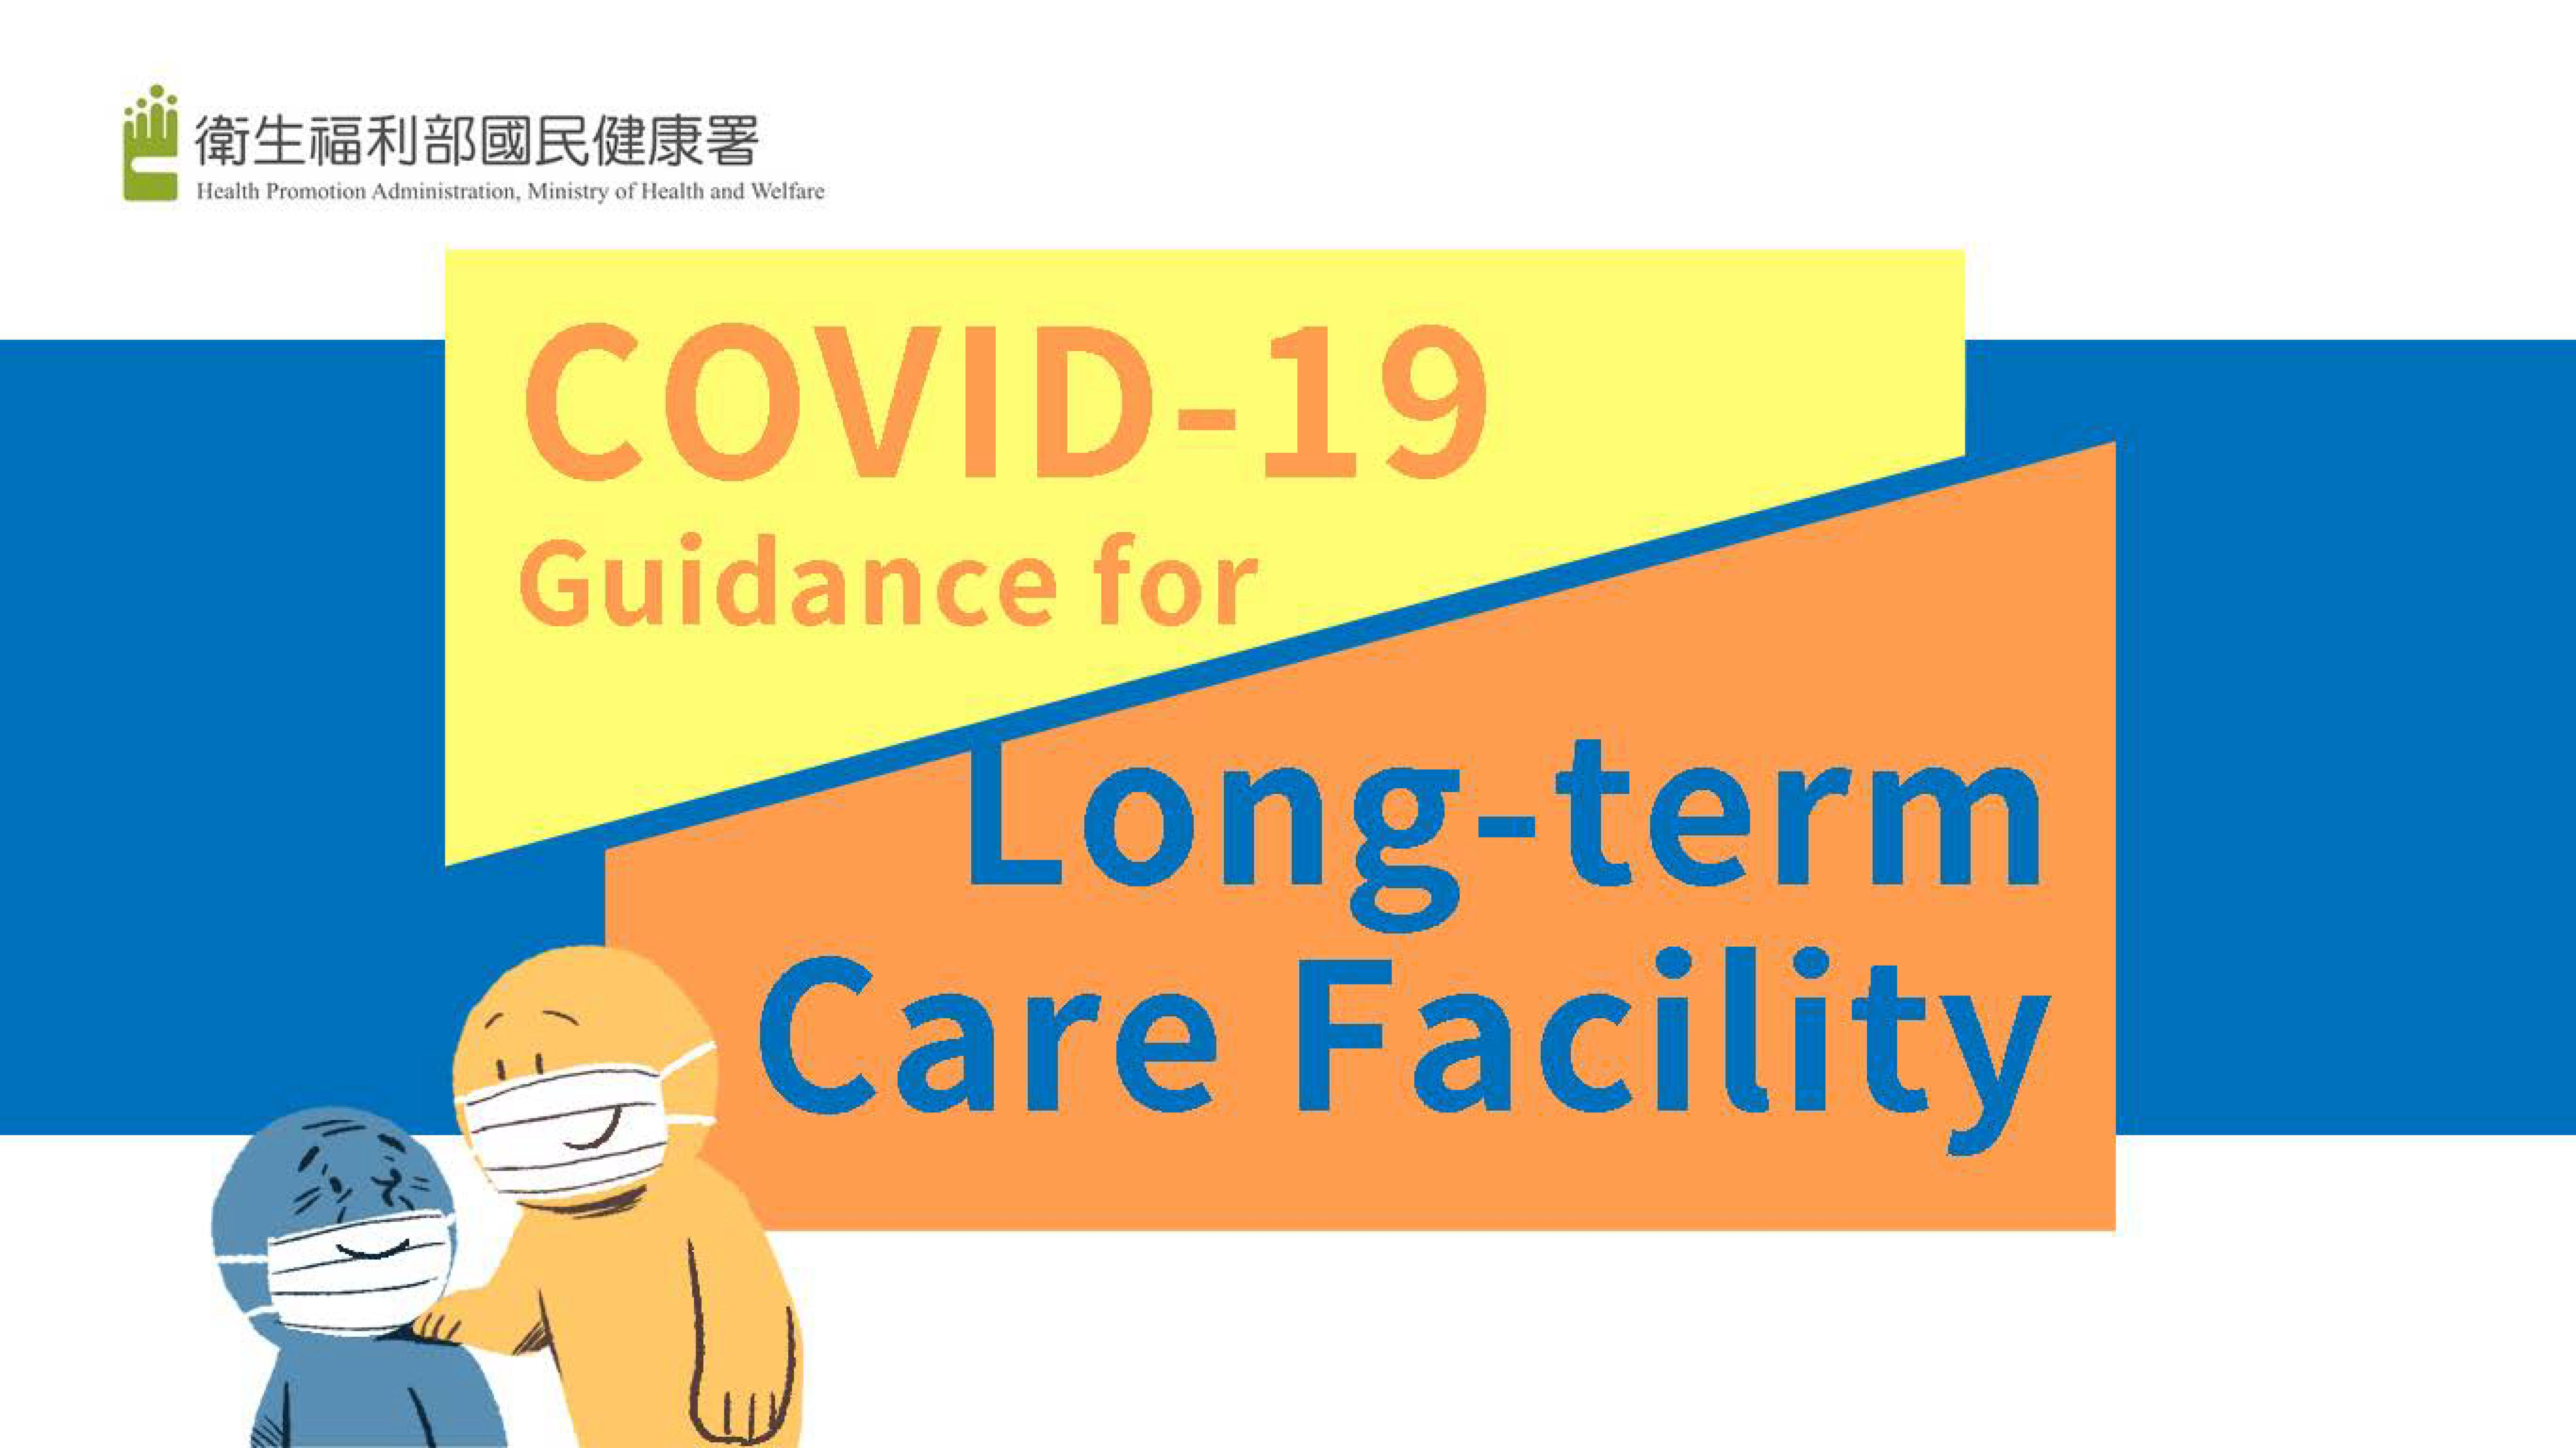 COVID-19 Guidance for Long-term Care Facility